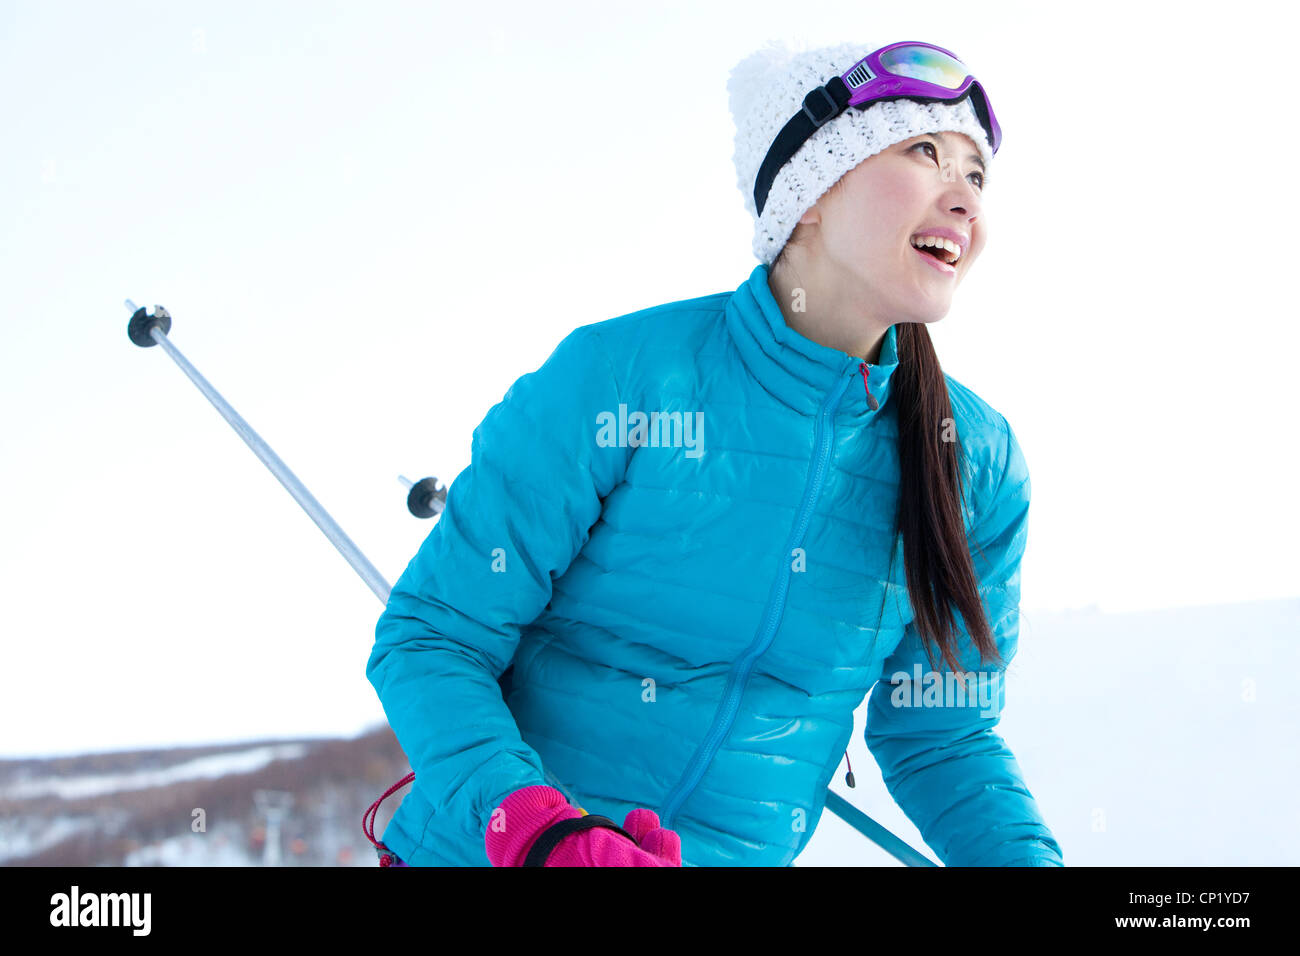 Young woman in skiing resort - Stock Image